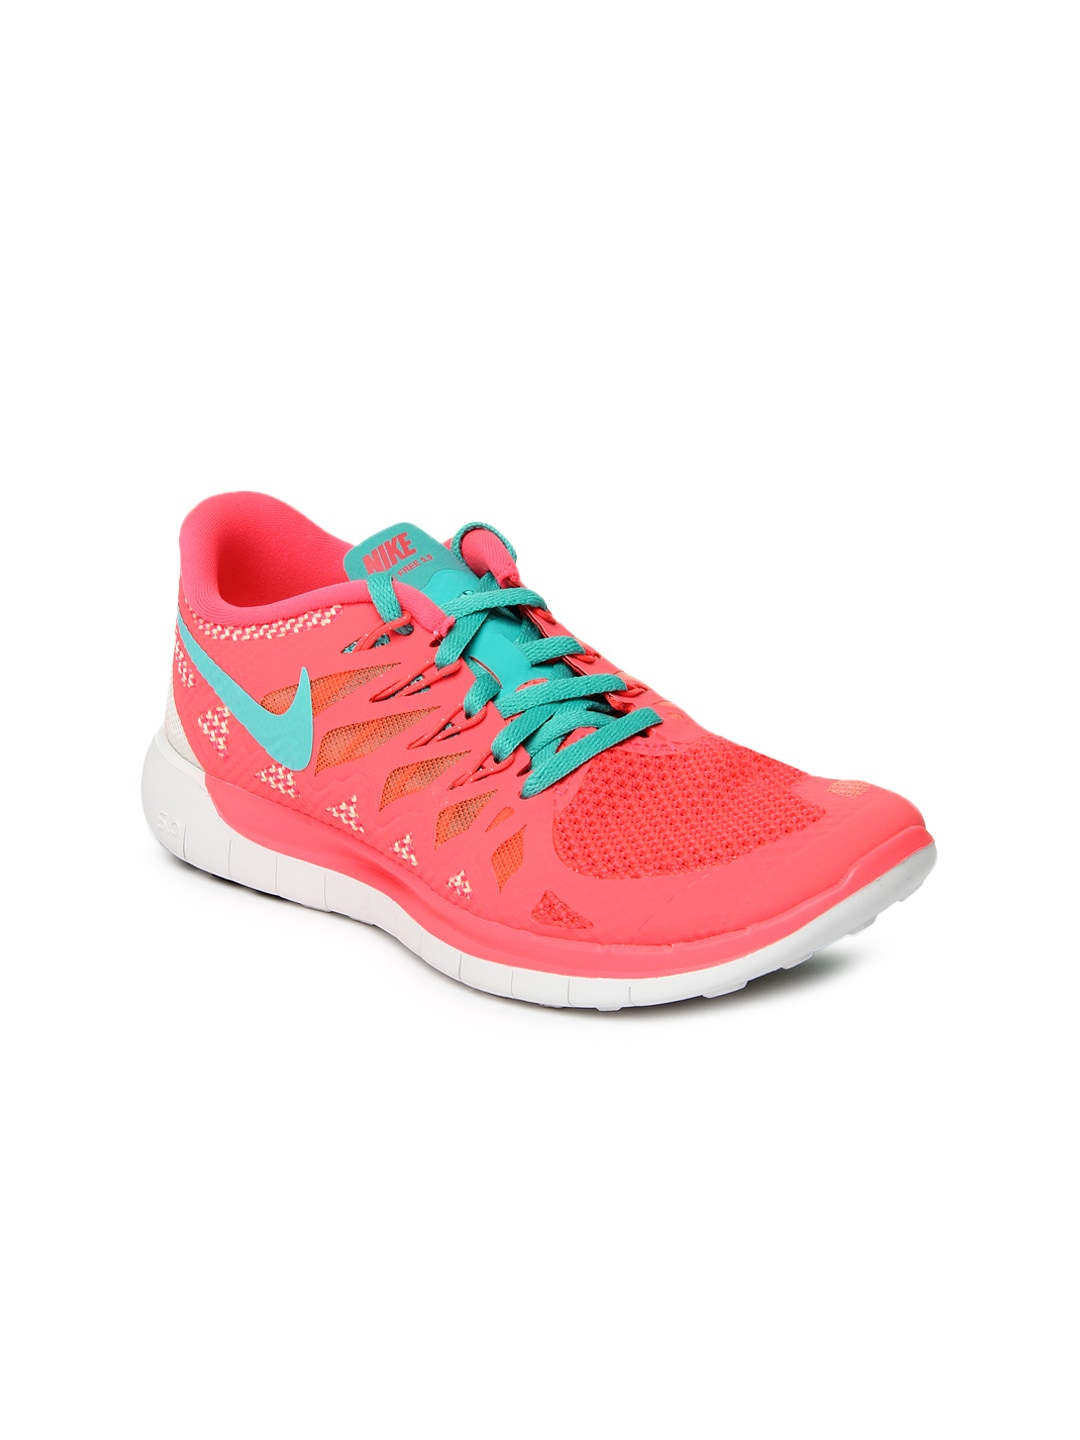 Unique  Nike Shoes Outlet Women Nike Nike Free Runs Nike Air Max Neon Pink